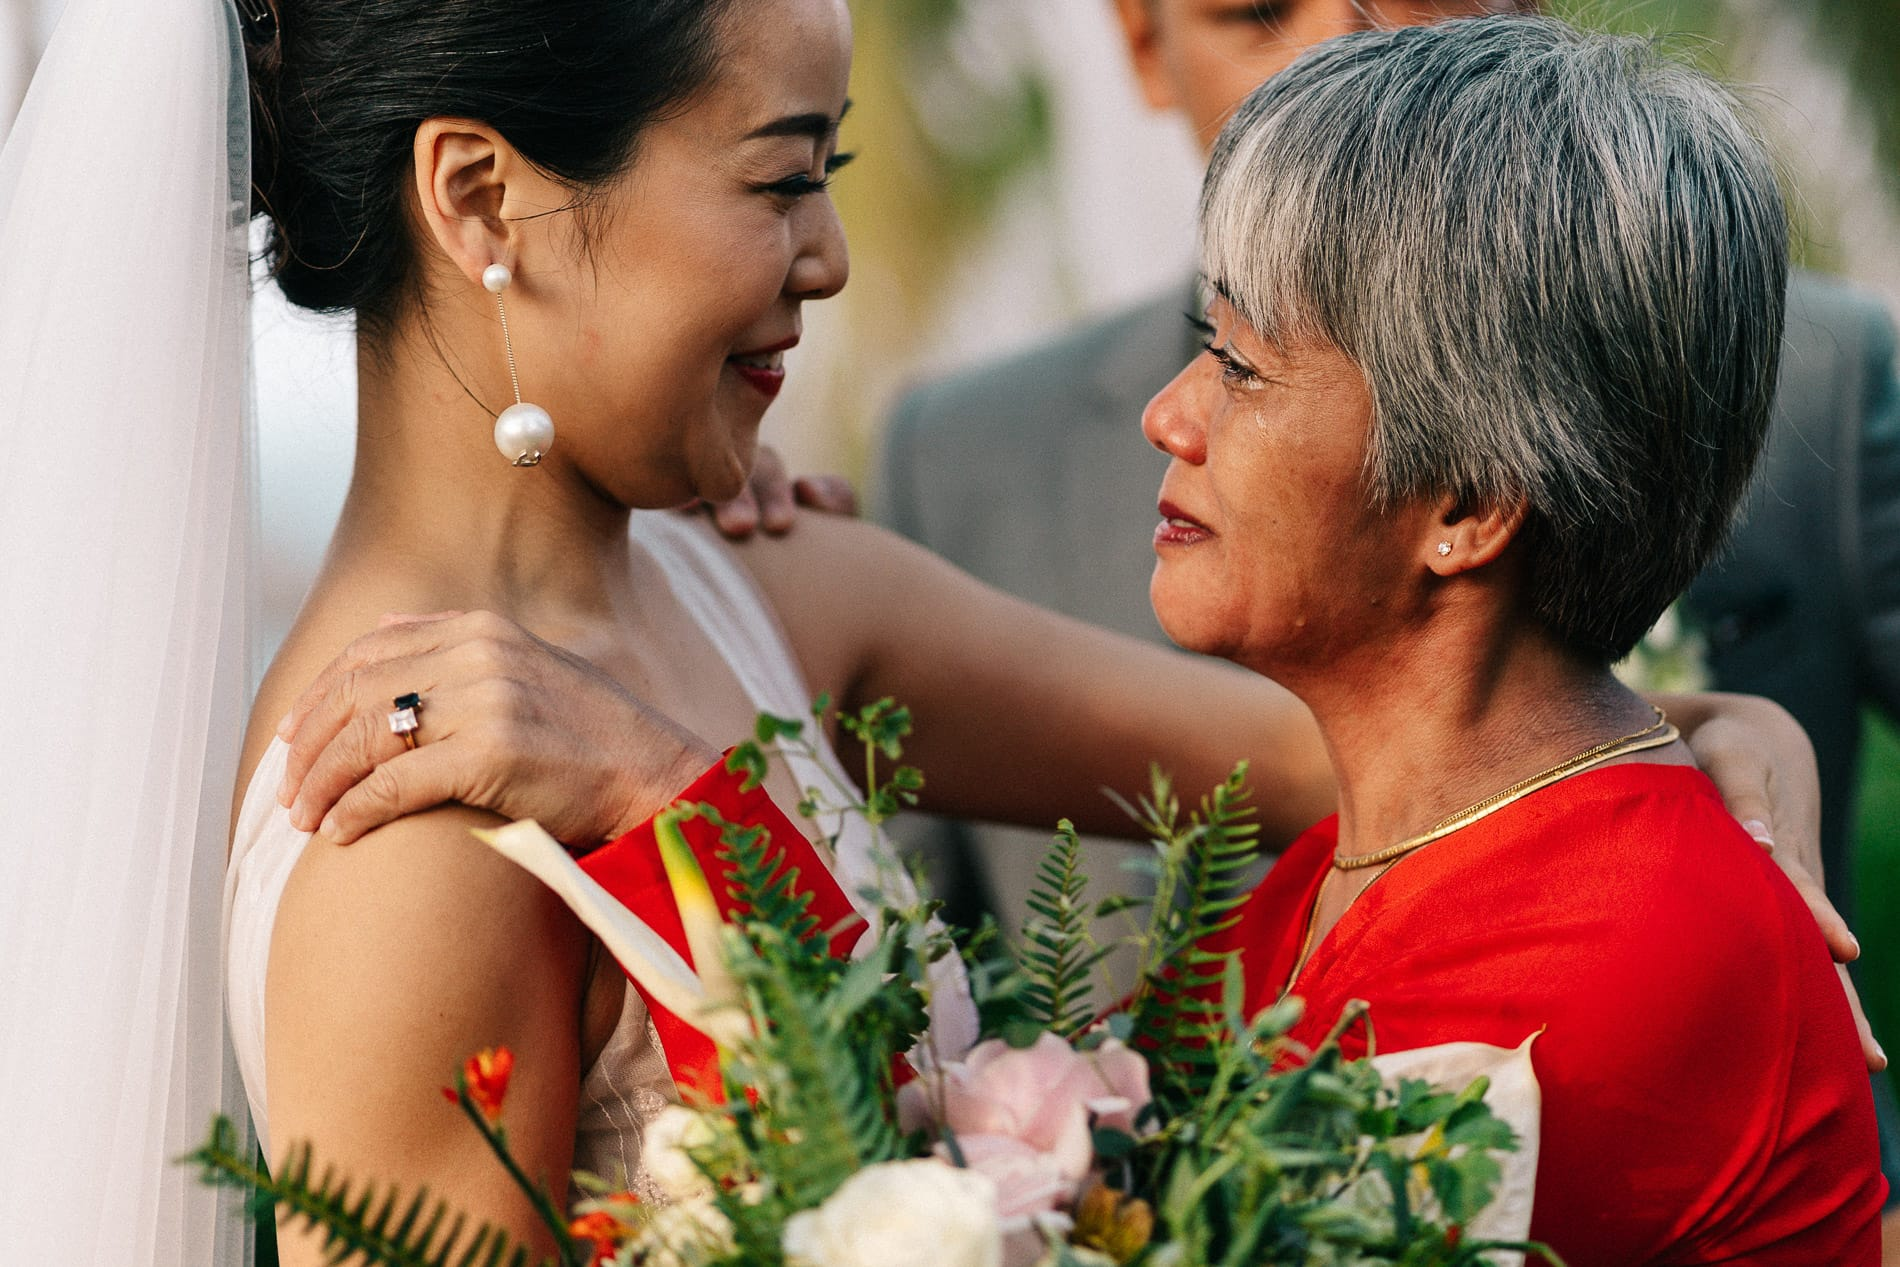 A mother's emotional moment during a wedding in Hoi An